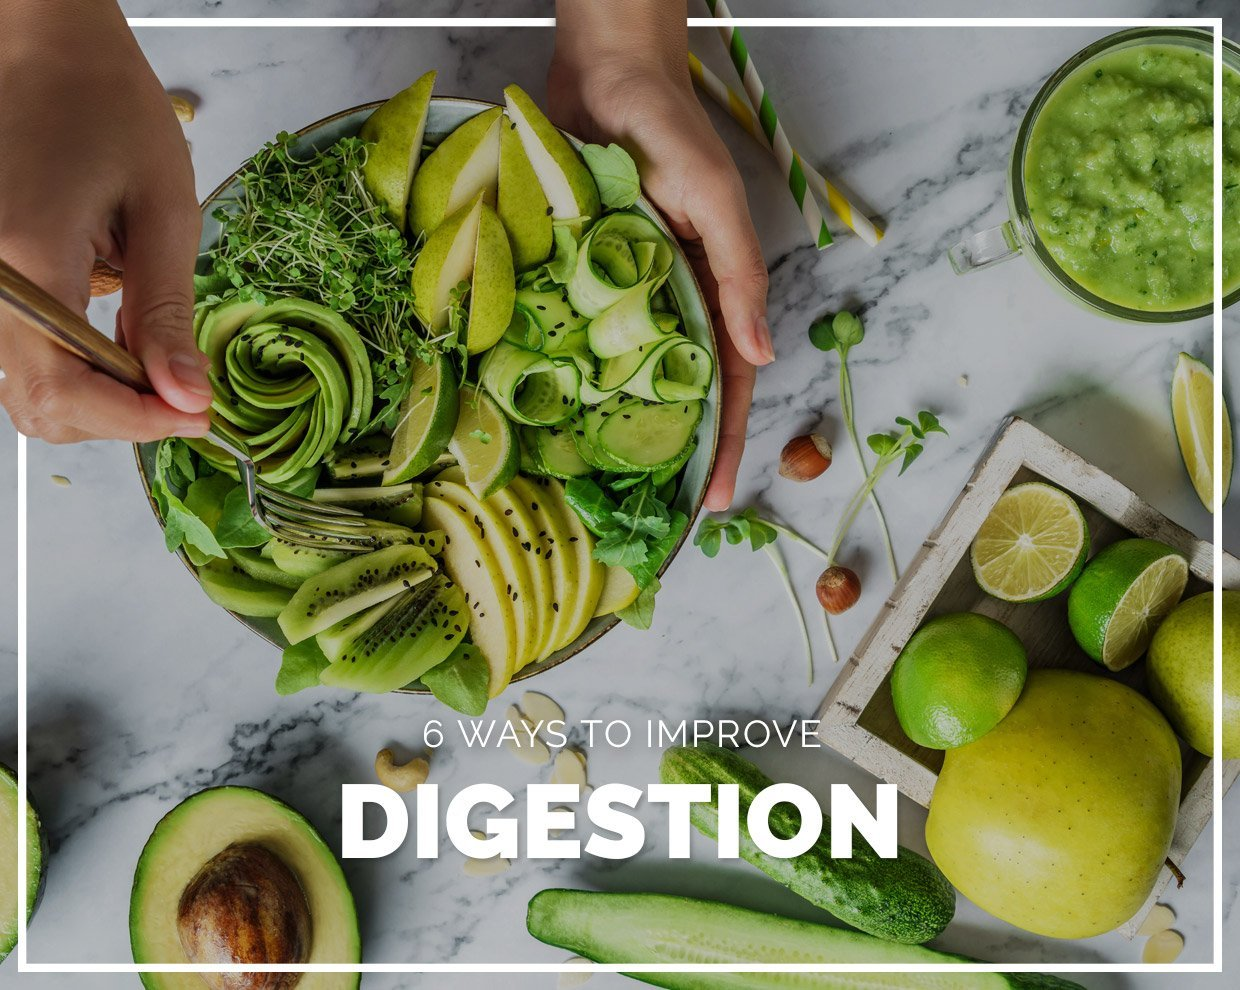 6 ways to improve your digestion